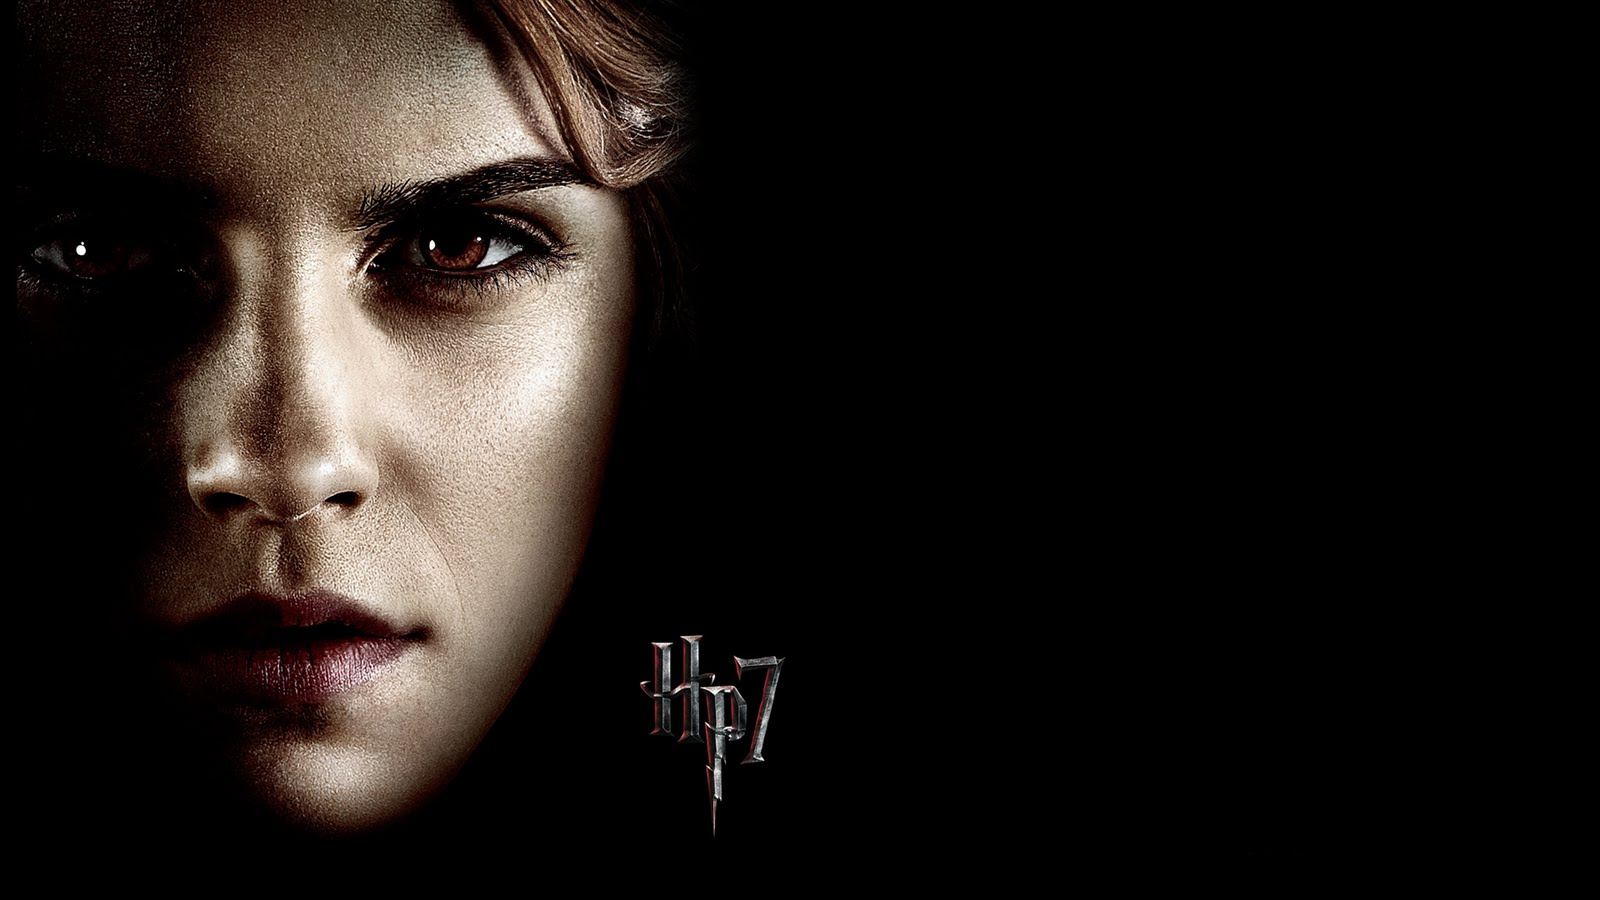 Harry Potter Deathly Hallows Part 2 HD Posters Wallpapers